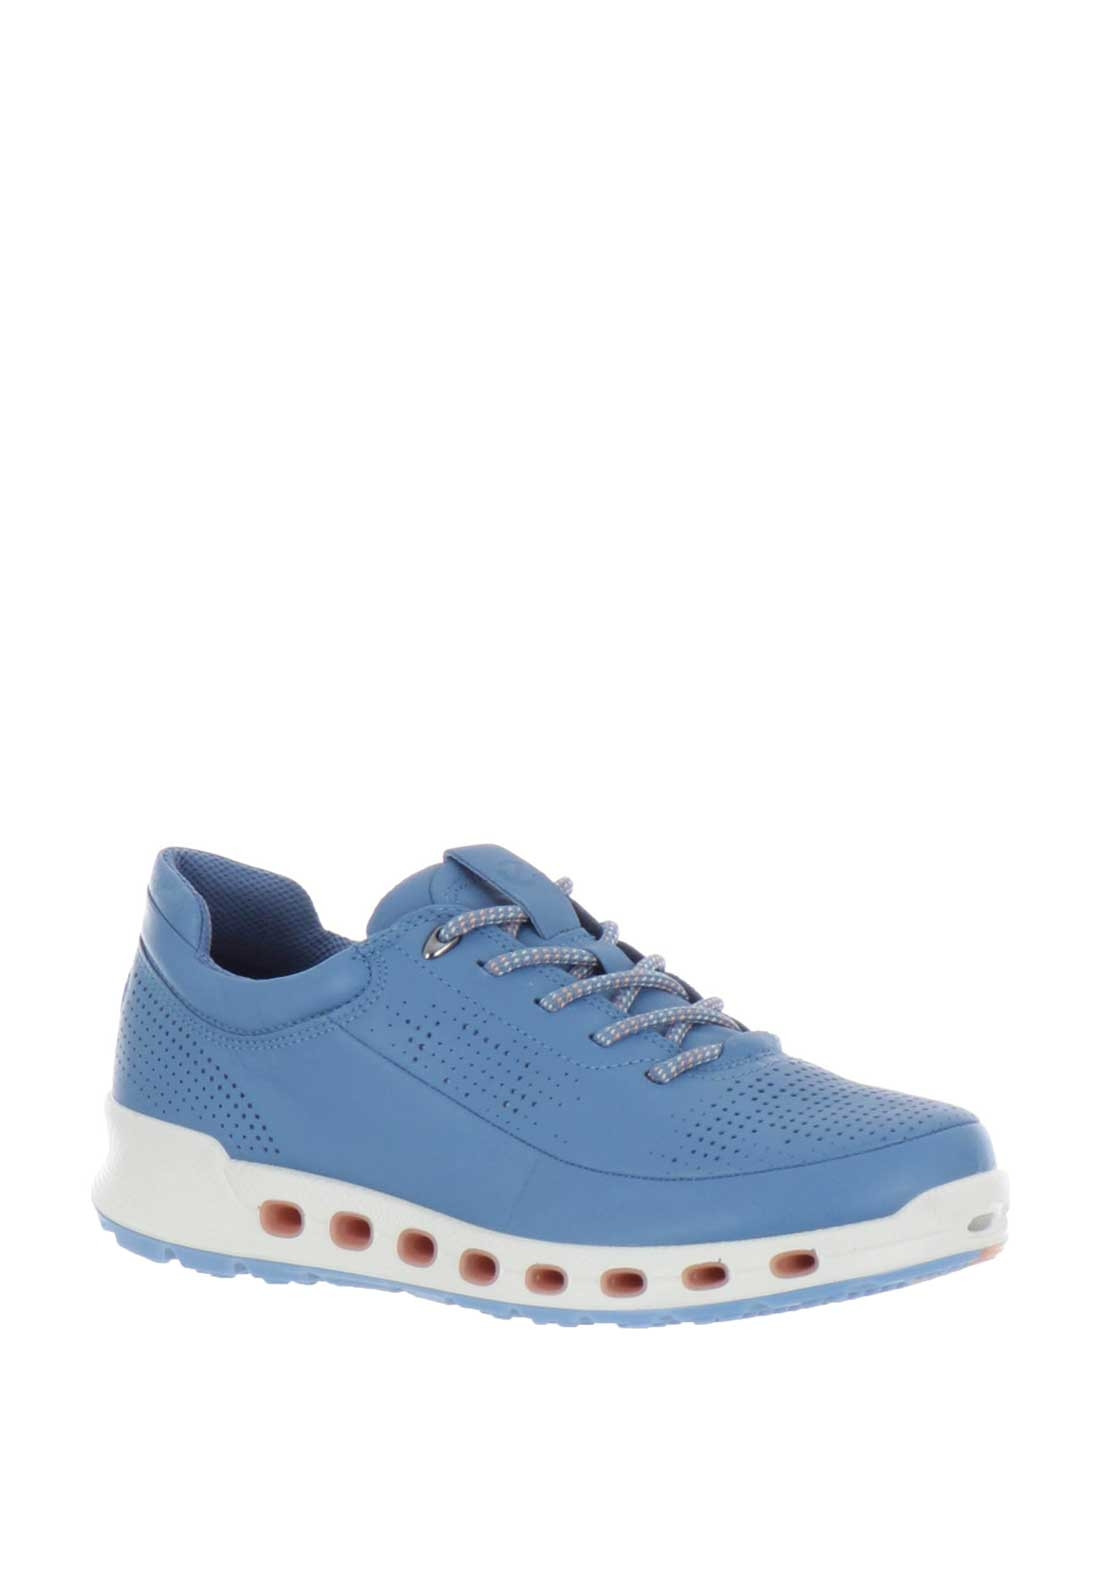 cced78e64080b Ecco Womens Cool 2.0 Leather Trainers, Blue. Be the first to review this  product